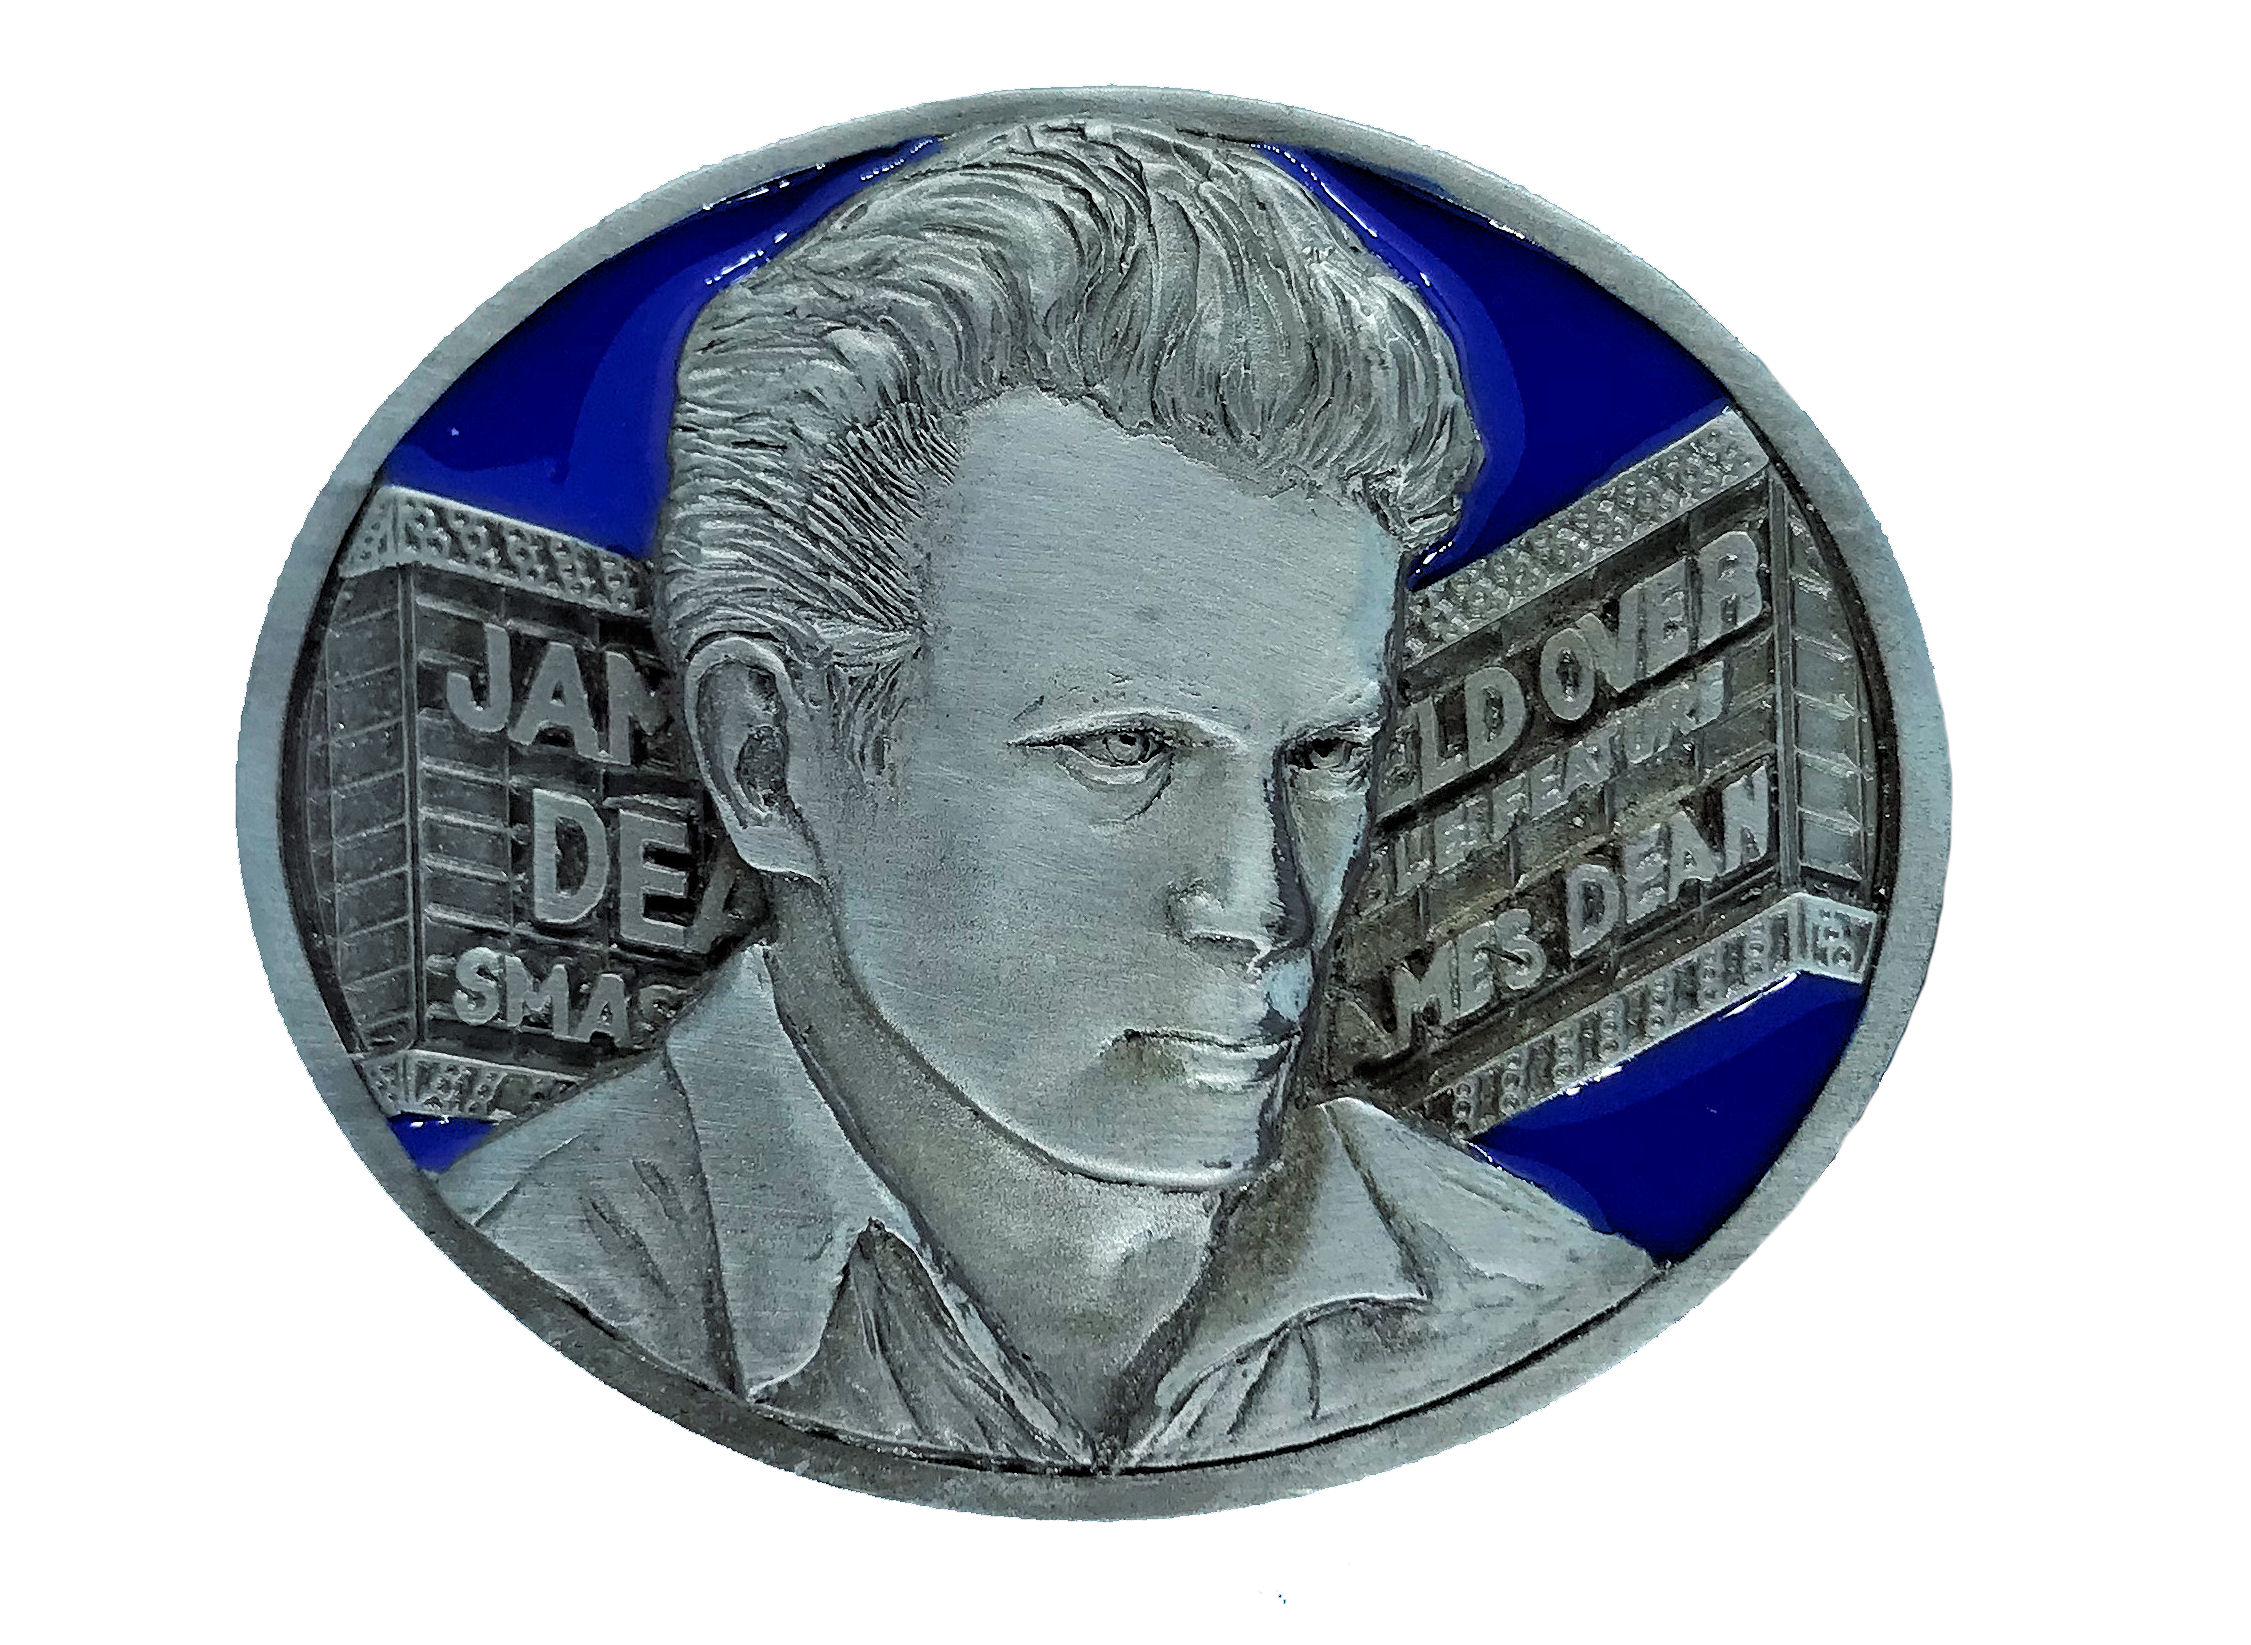 James Dean - Marquee Blue Belt Buckle